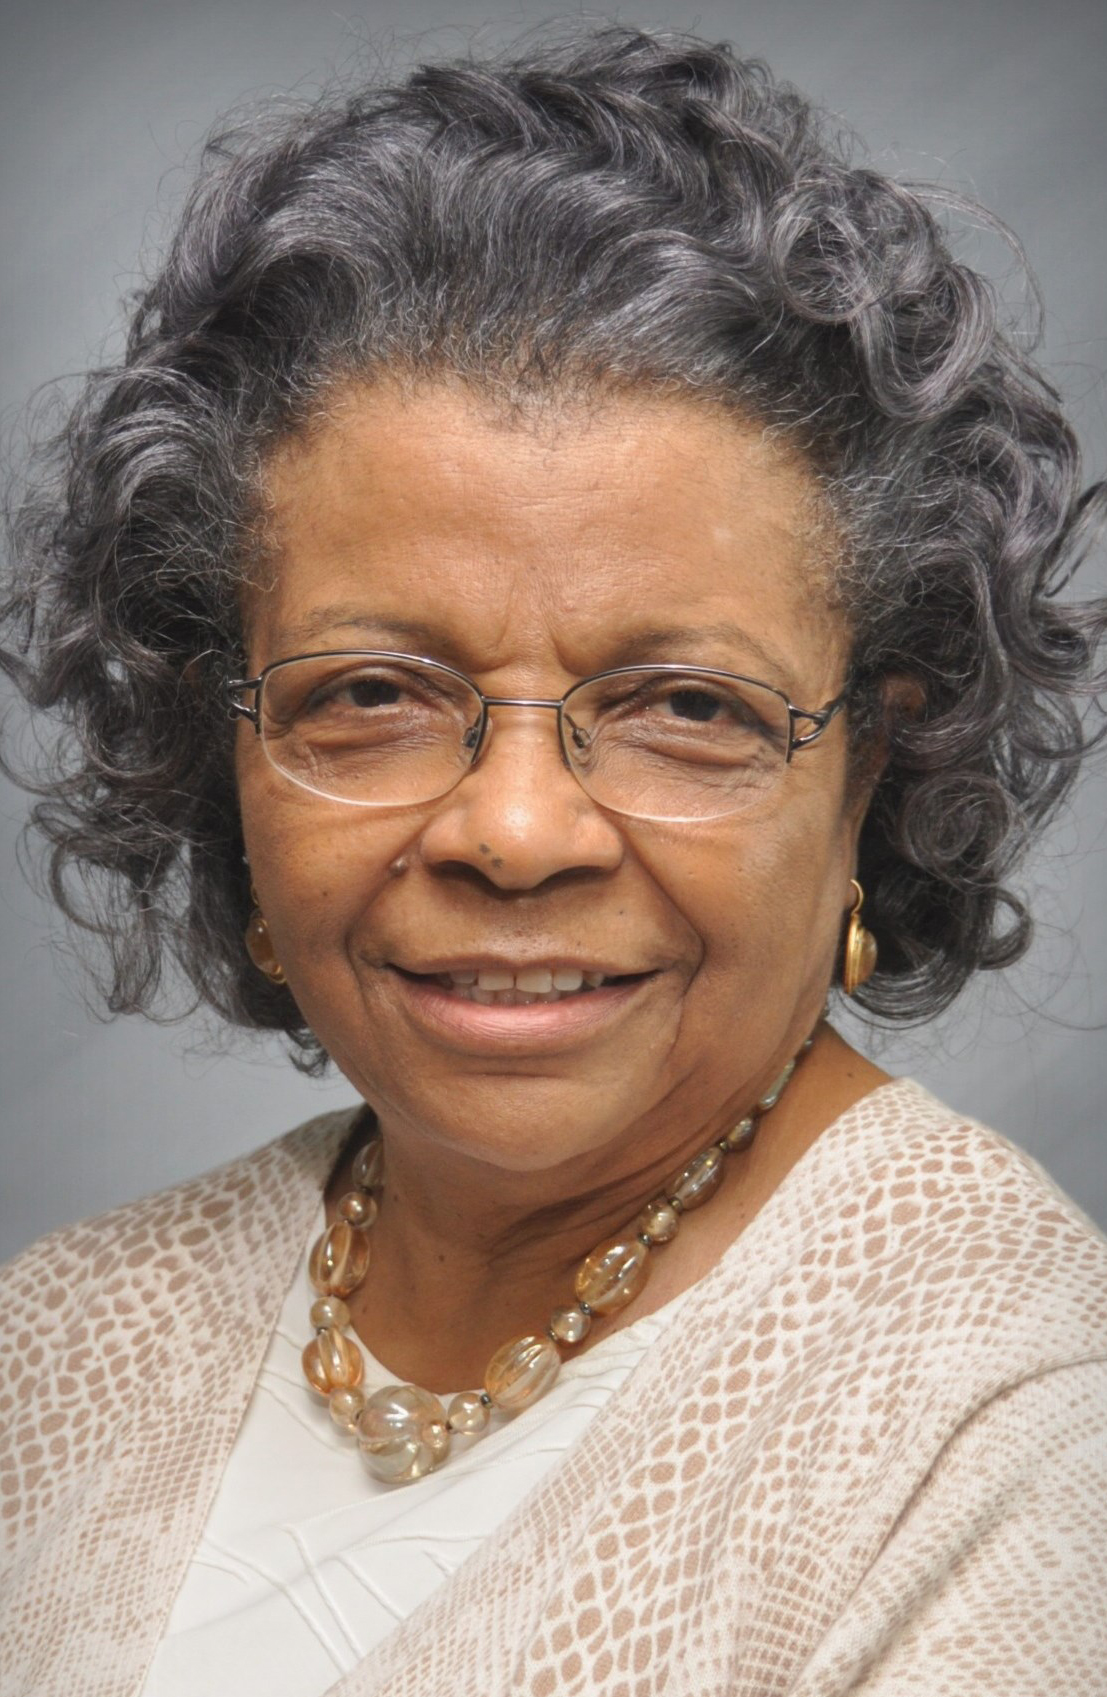 Dr. Jacqueline W. Canty